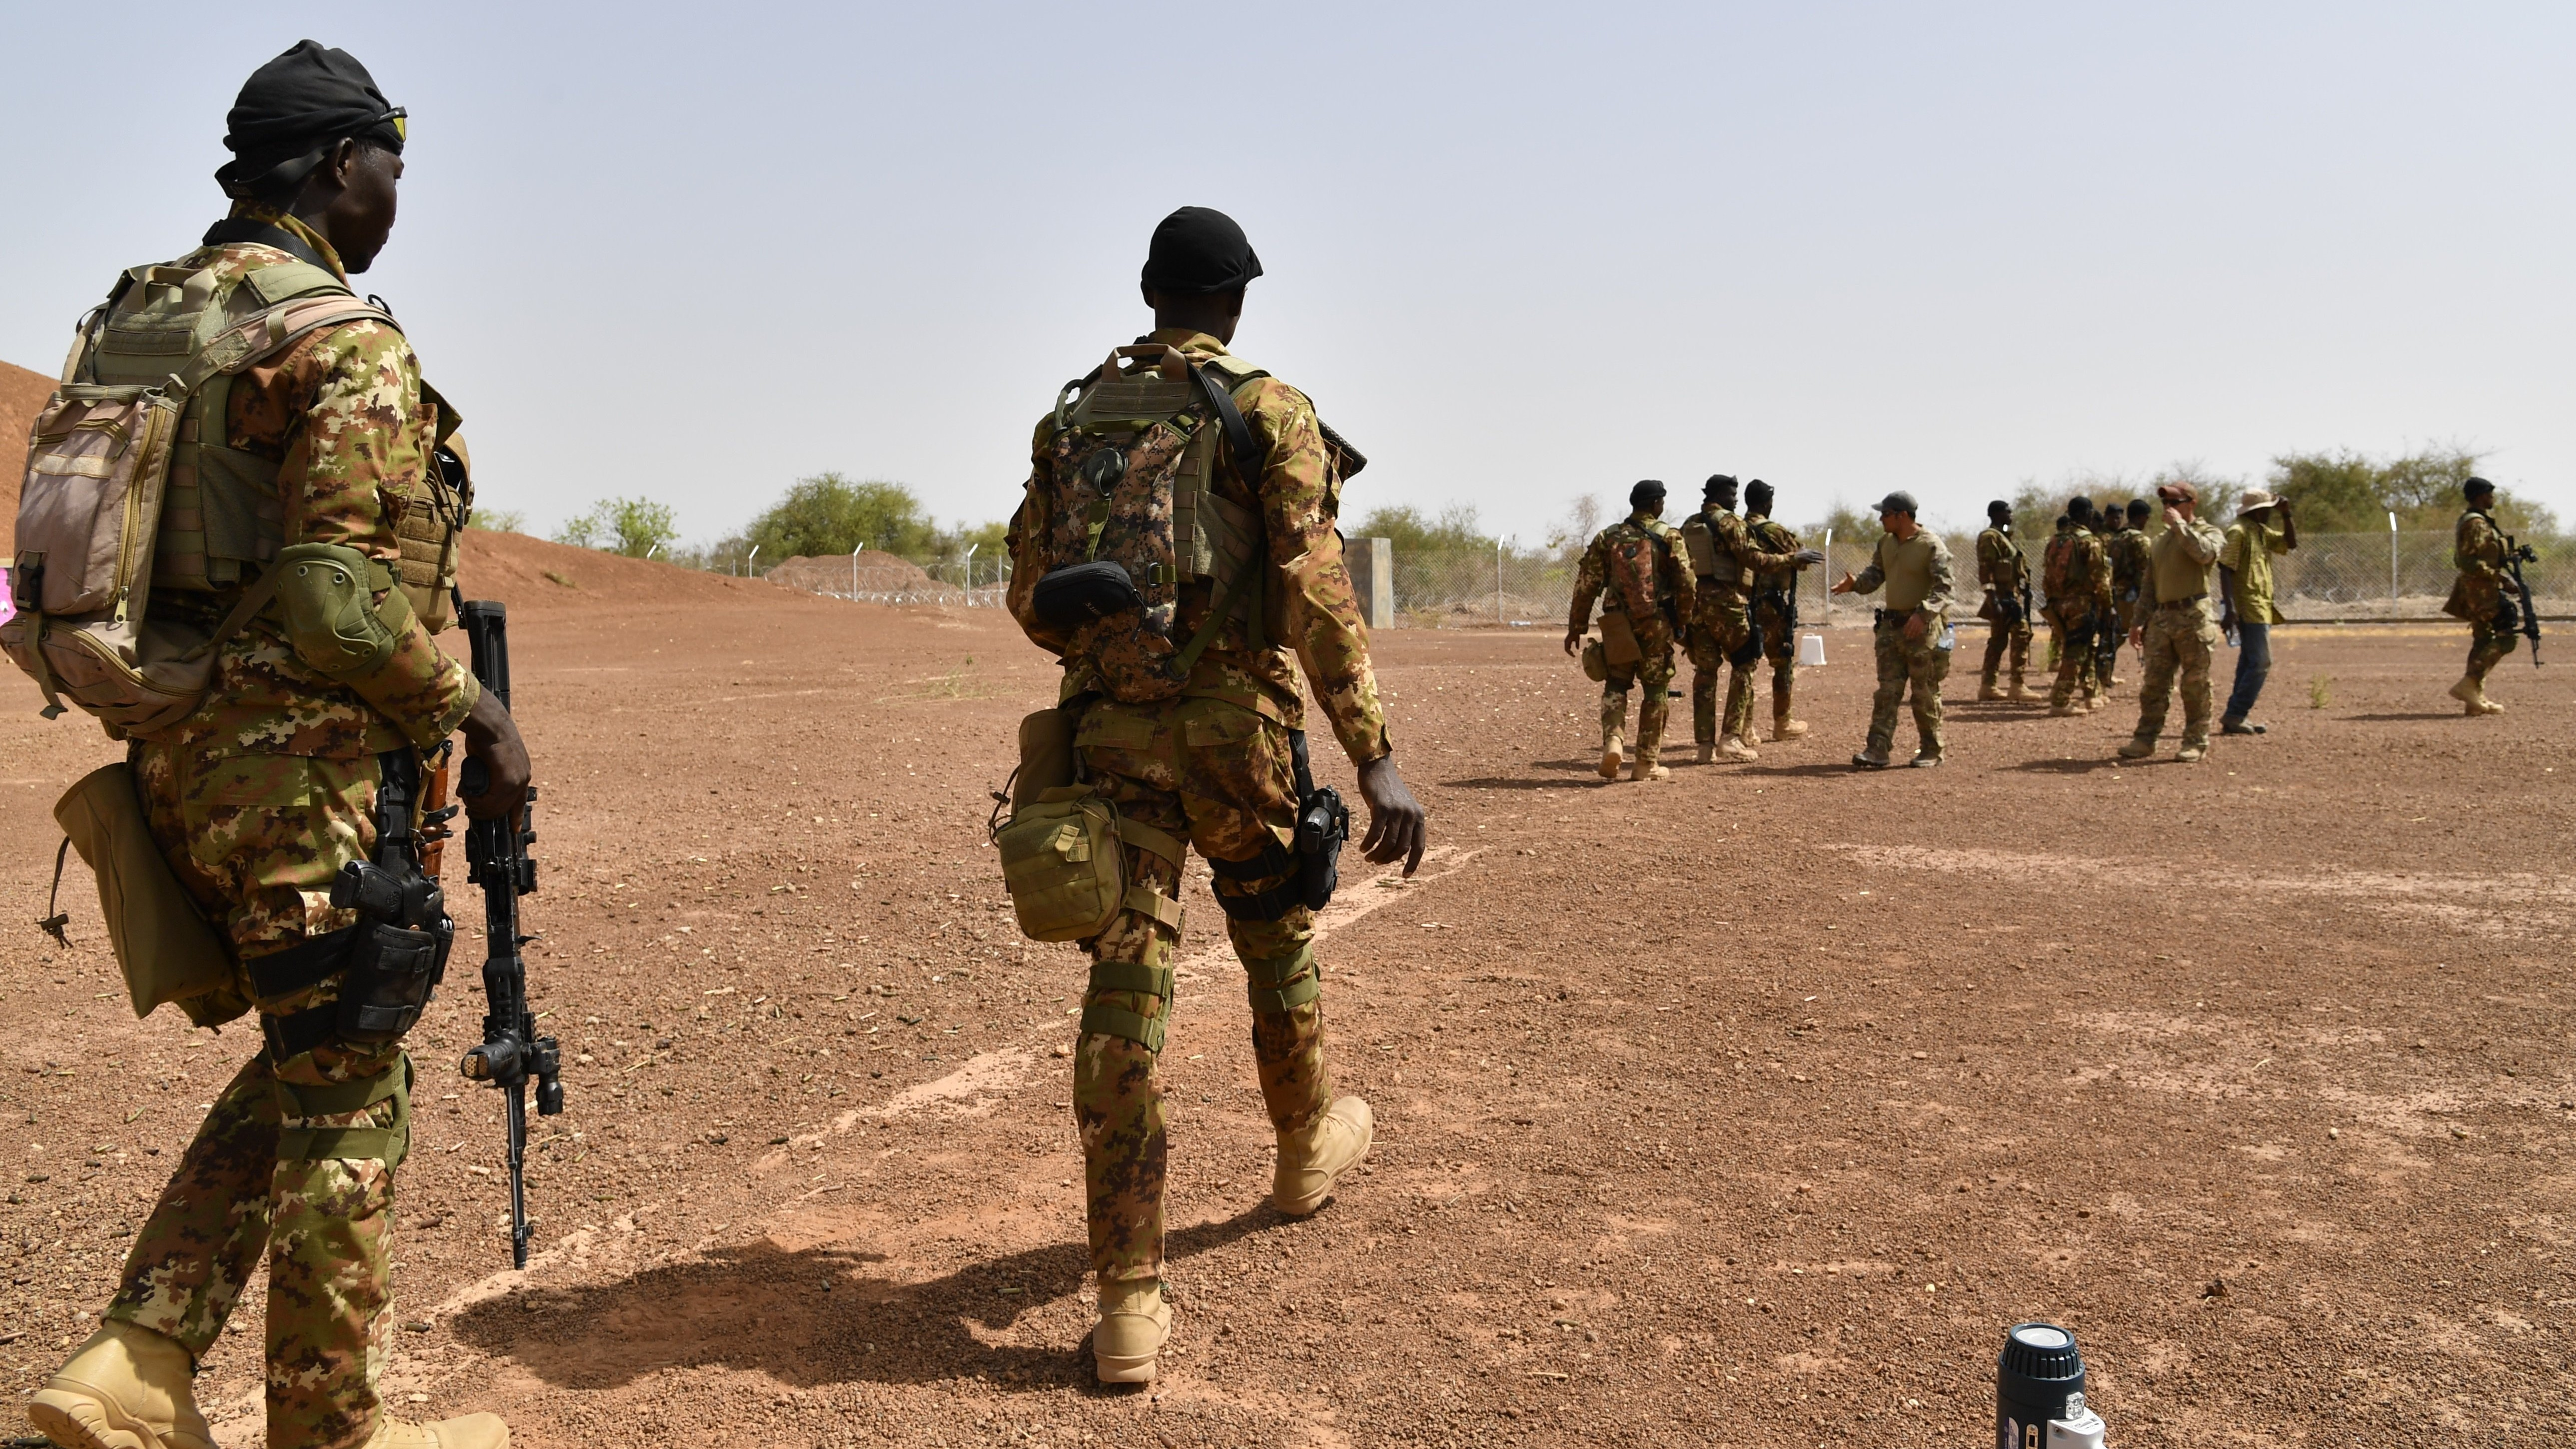 Afbeeldingsresultaat voor EXCLUSIVE: THE U.S. HAS MORE MILITARY OPERATIONS IN AFRICA THAN THE MIDDLE EAST